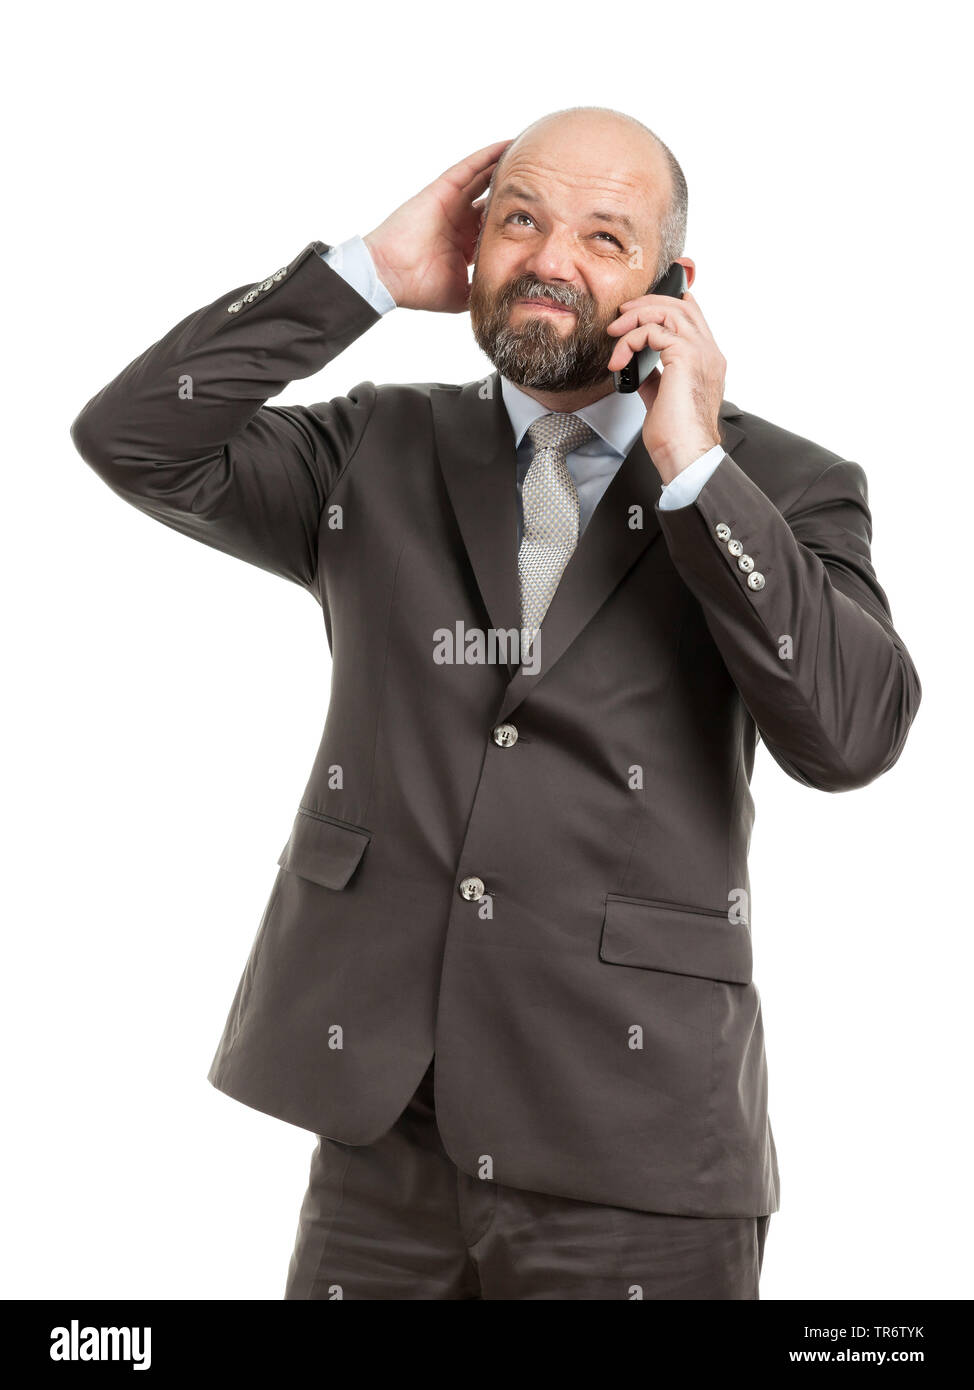 Middle-aged businessmann calling with his phone near his ear, Germany Stock Photo